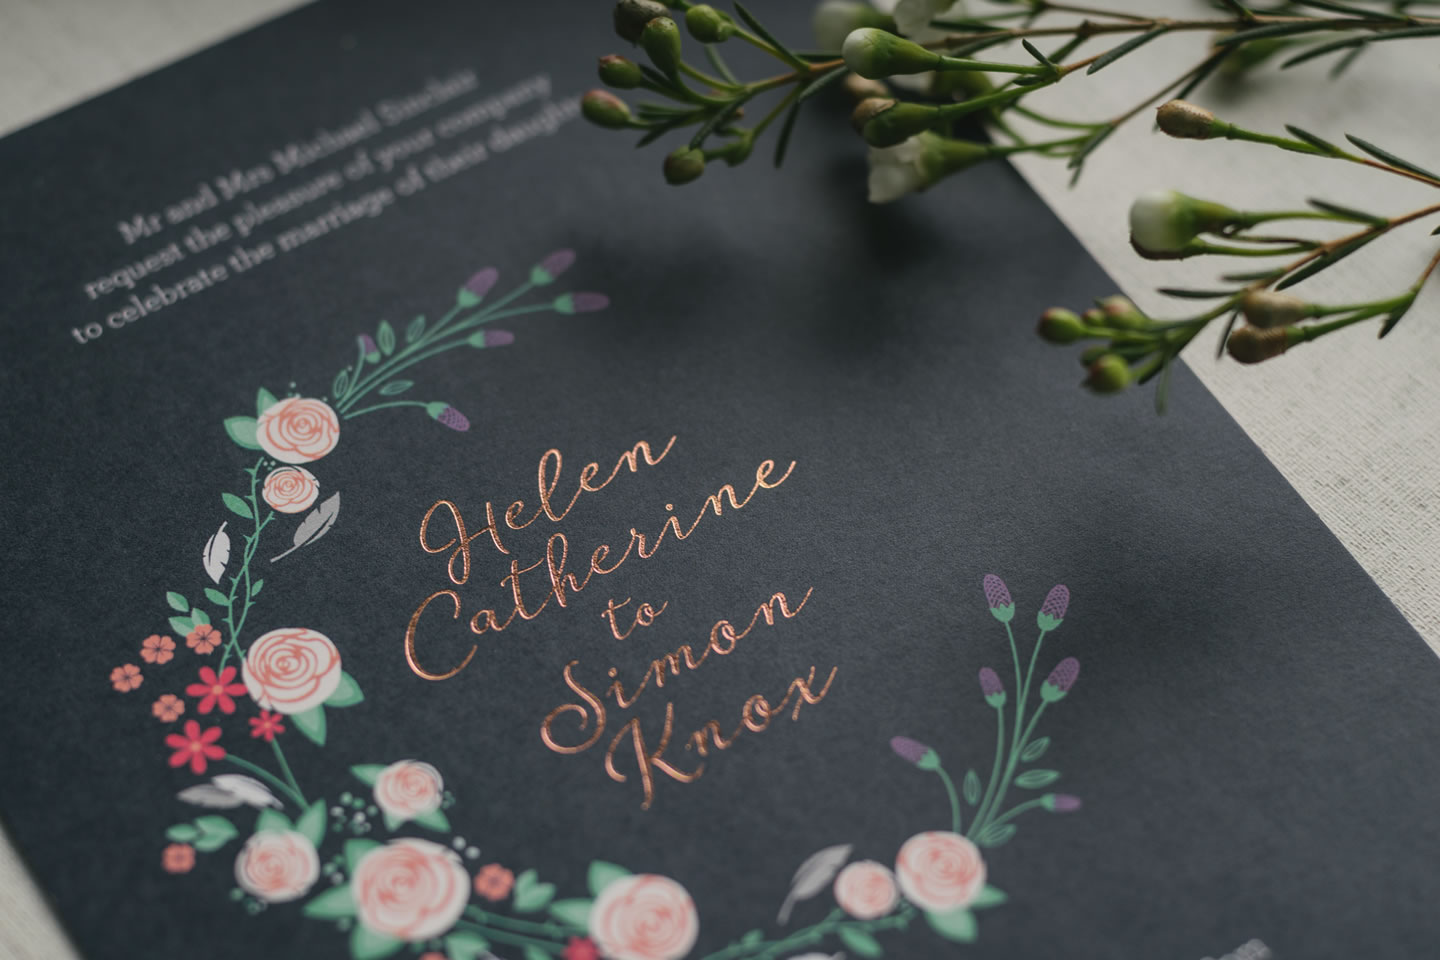 Summer Wedding Ideas - Personalised Floral Wedding Invitations Foil Stamped - Foil Invite Company Luxury Wedding Stationer